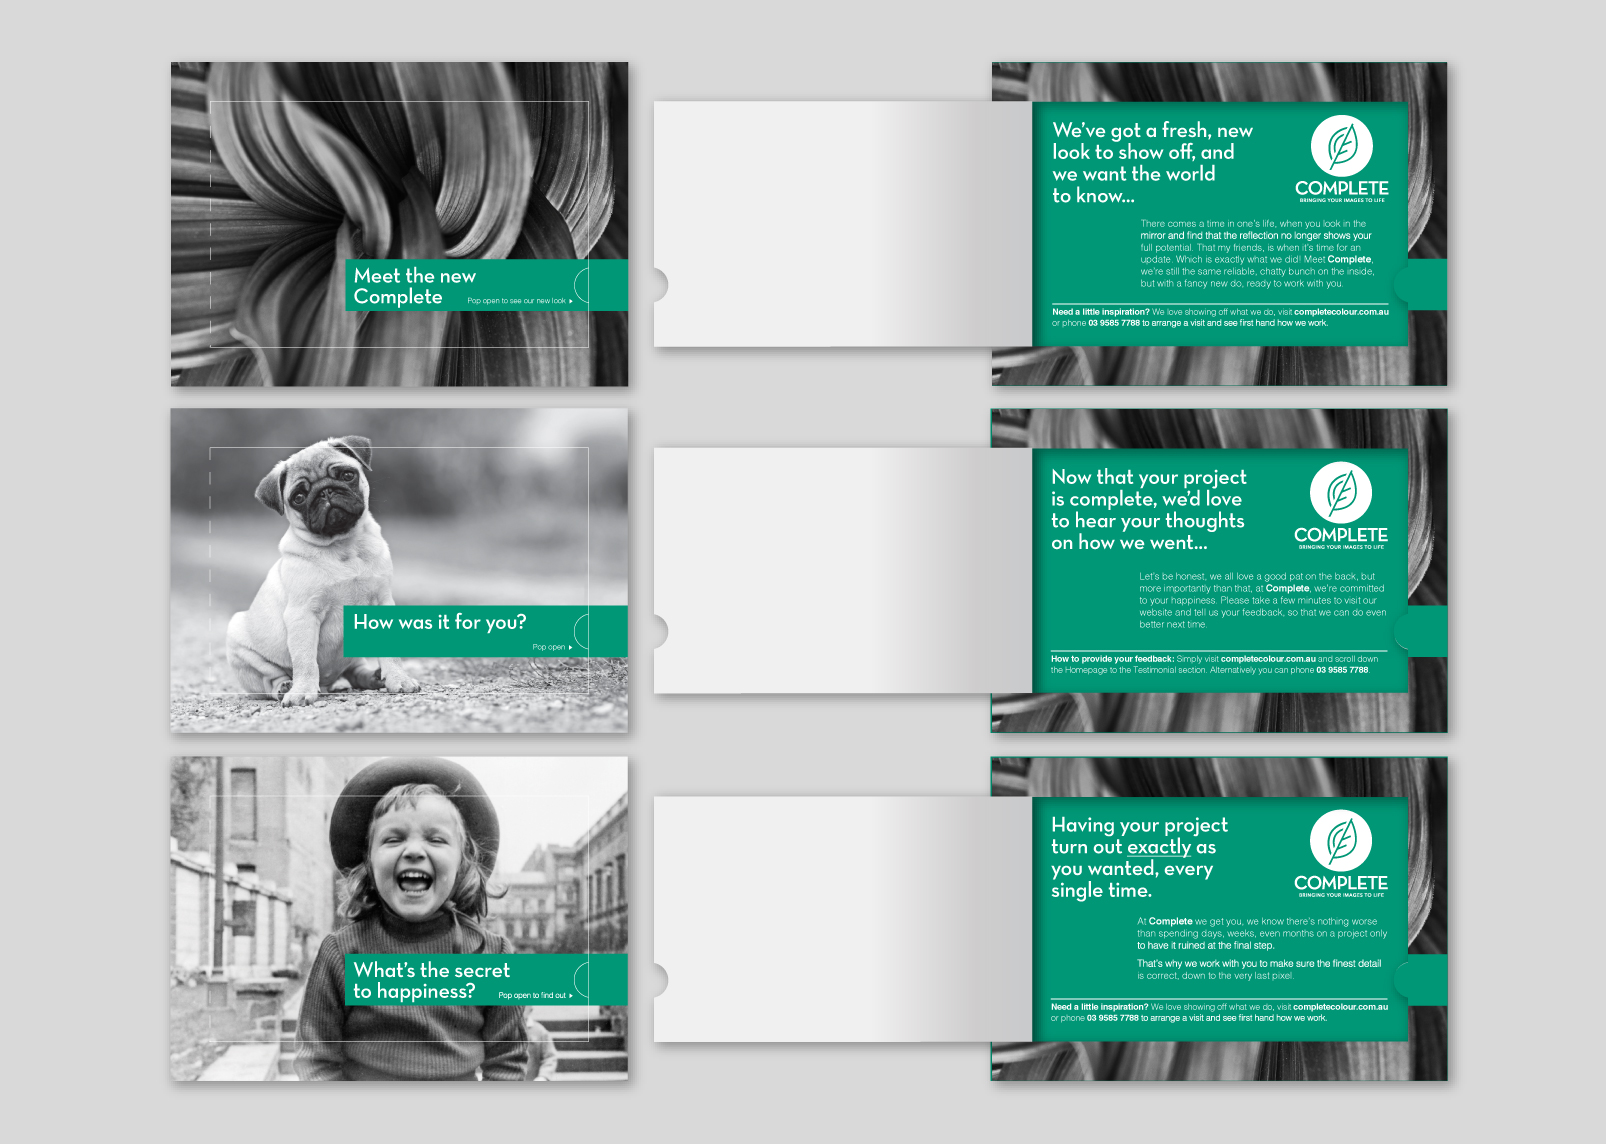 The three initial postcard designs by Gloss: Introducing the new brand, maintaining customer satisfaction by prompting feedback, and establishing Complete's differentiation - consistent quality results.